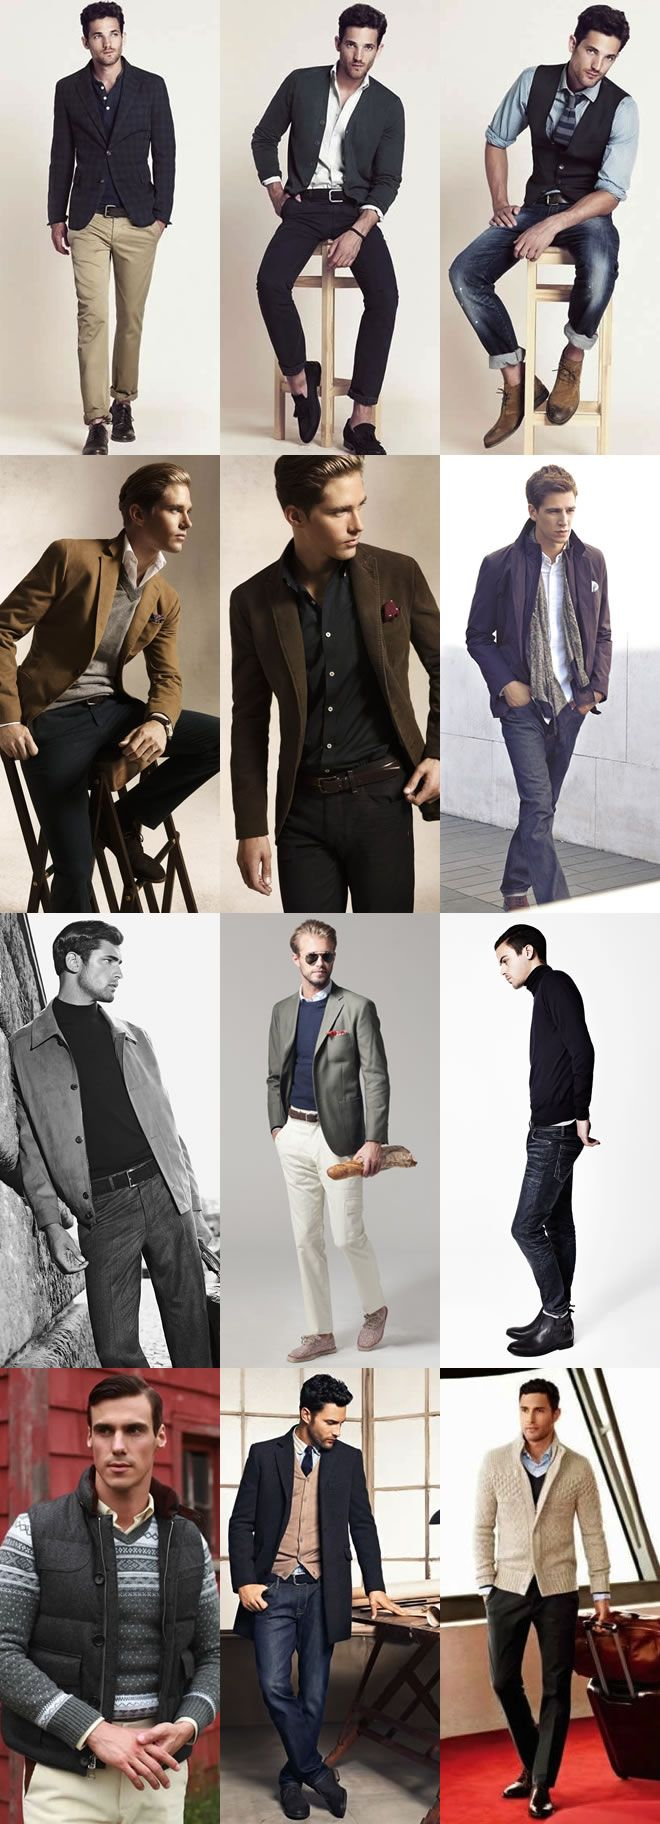 Style, fashion and Manly looks - www.Dudepins.com - Site for Men & Manly Interests